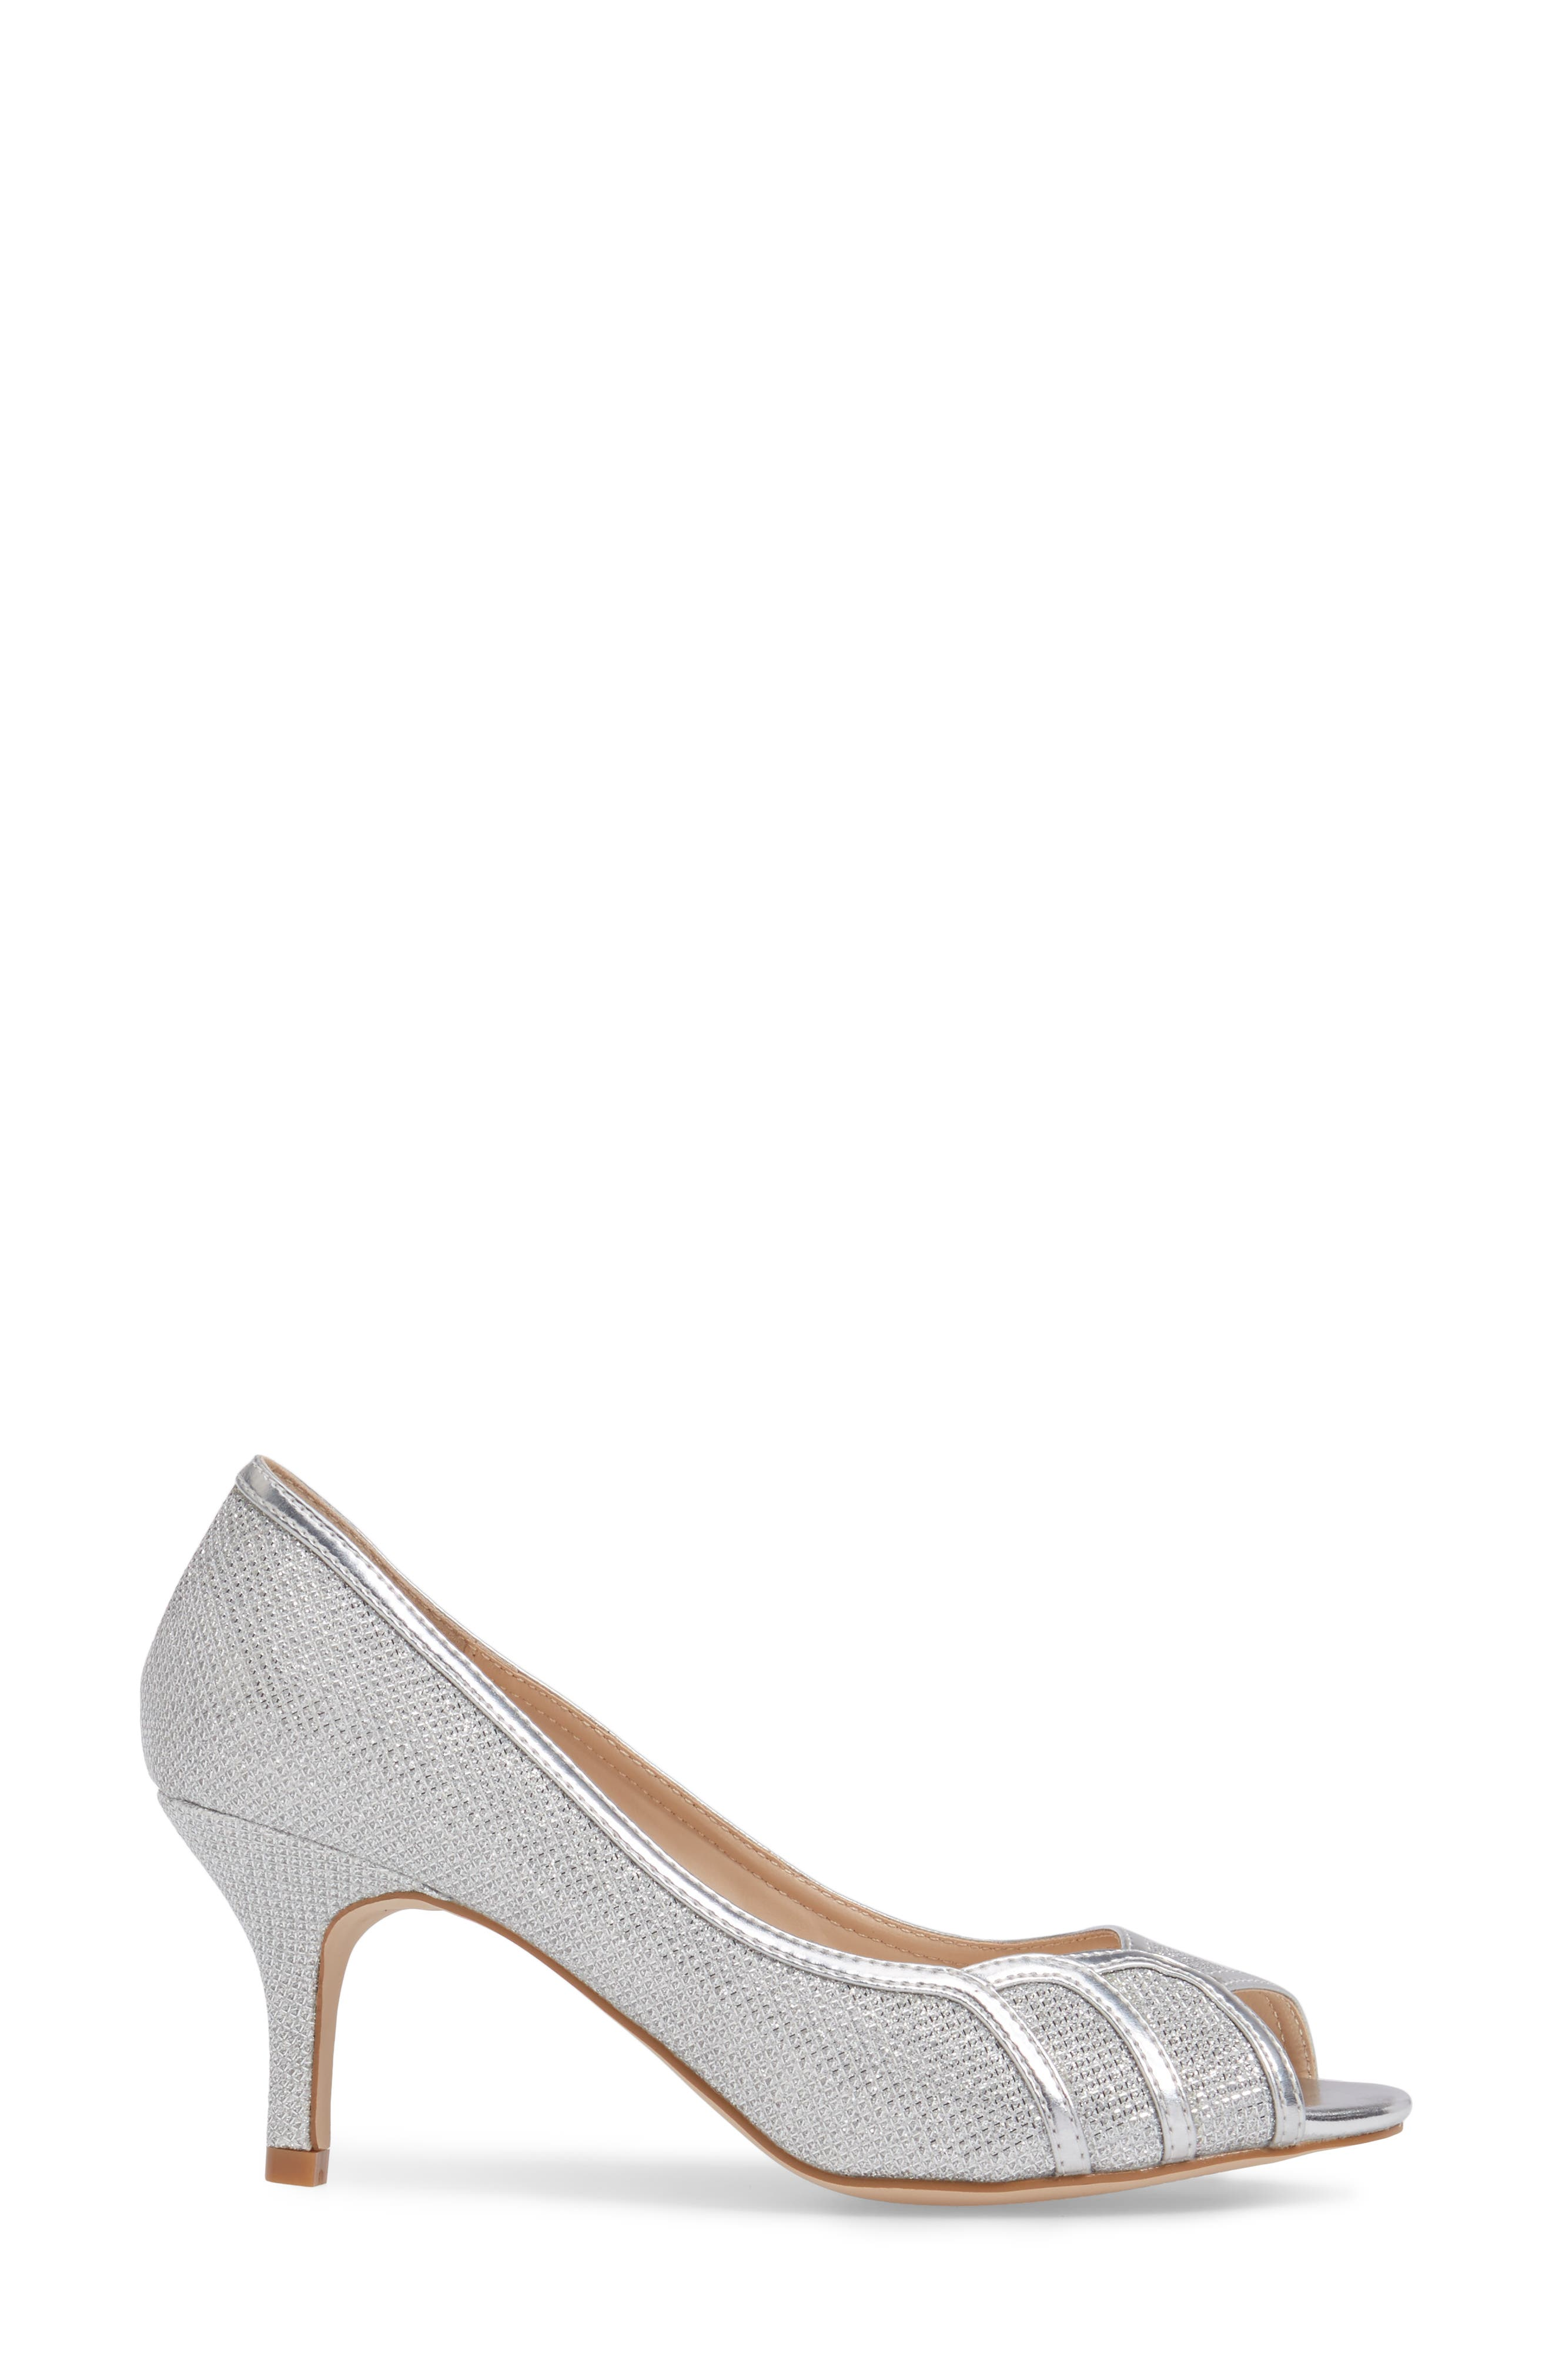 Chester Peep Toe Pump,                             Alternate thumbnail 3, color,                             SILVER